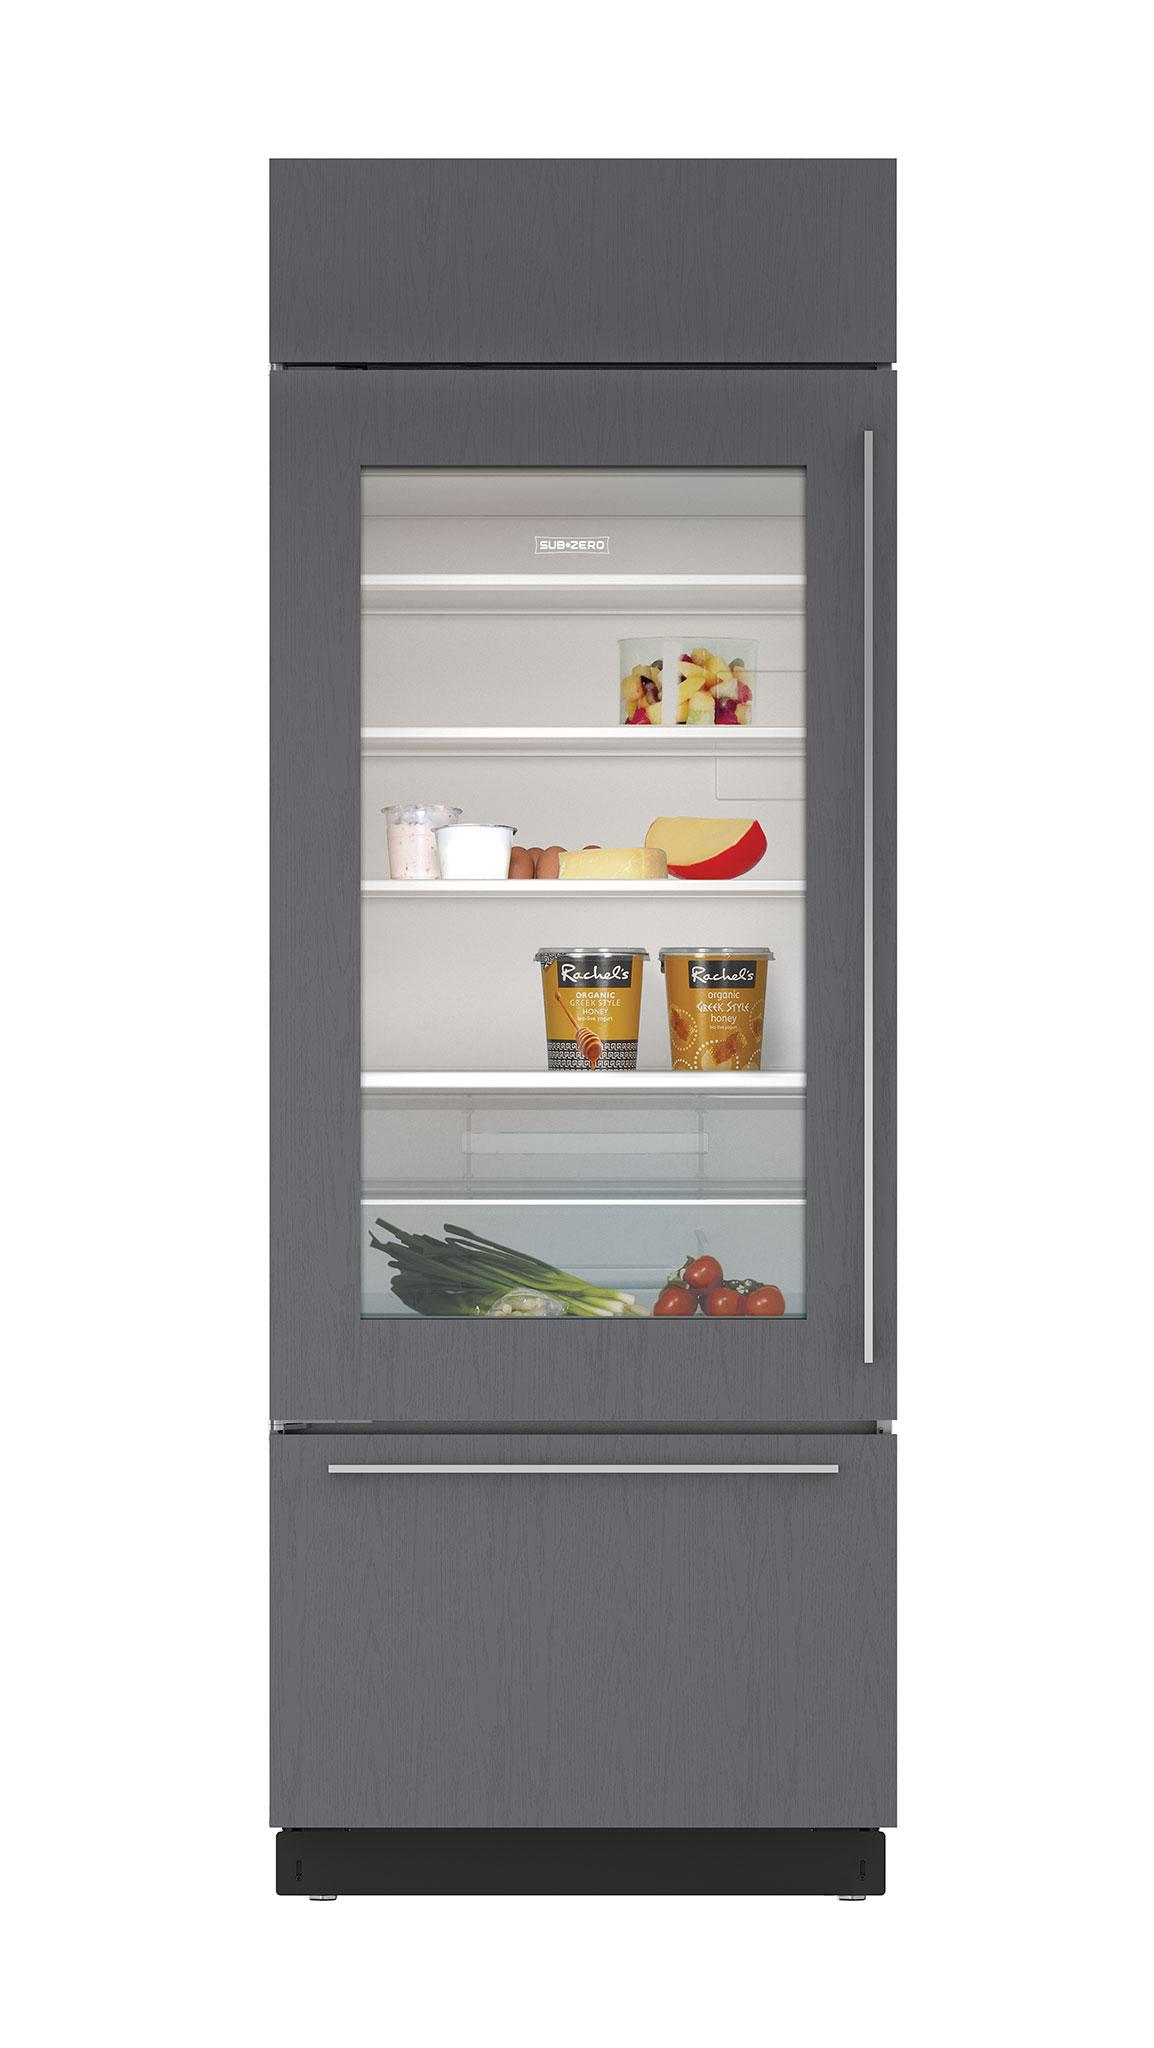 Sub zero 30 built in over and under glass door refrigerator freezer panel ready bi30ugorh - Glass door refrigerator freezer ...